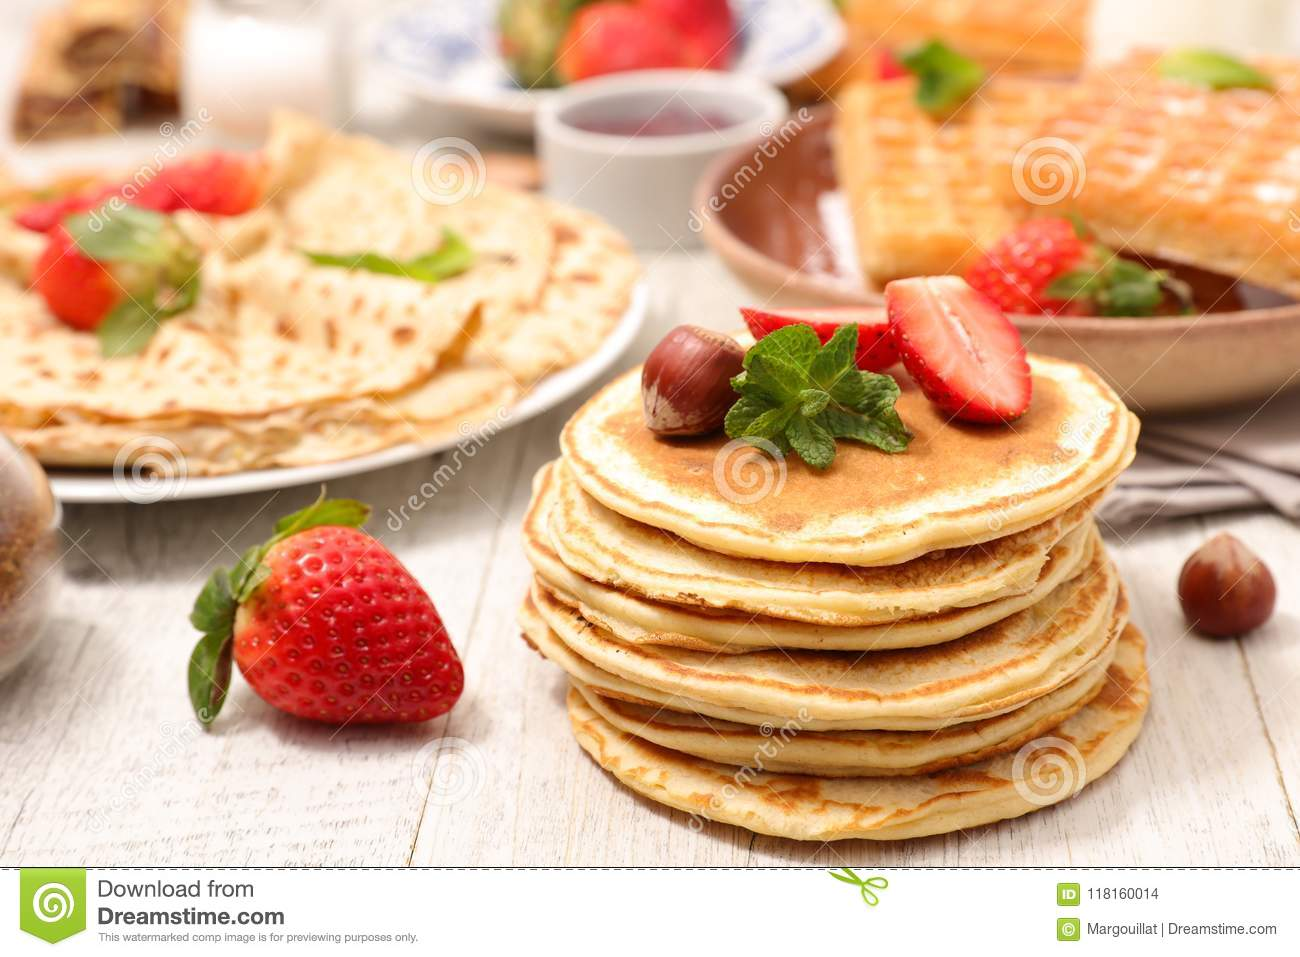 Assorted pancake